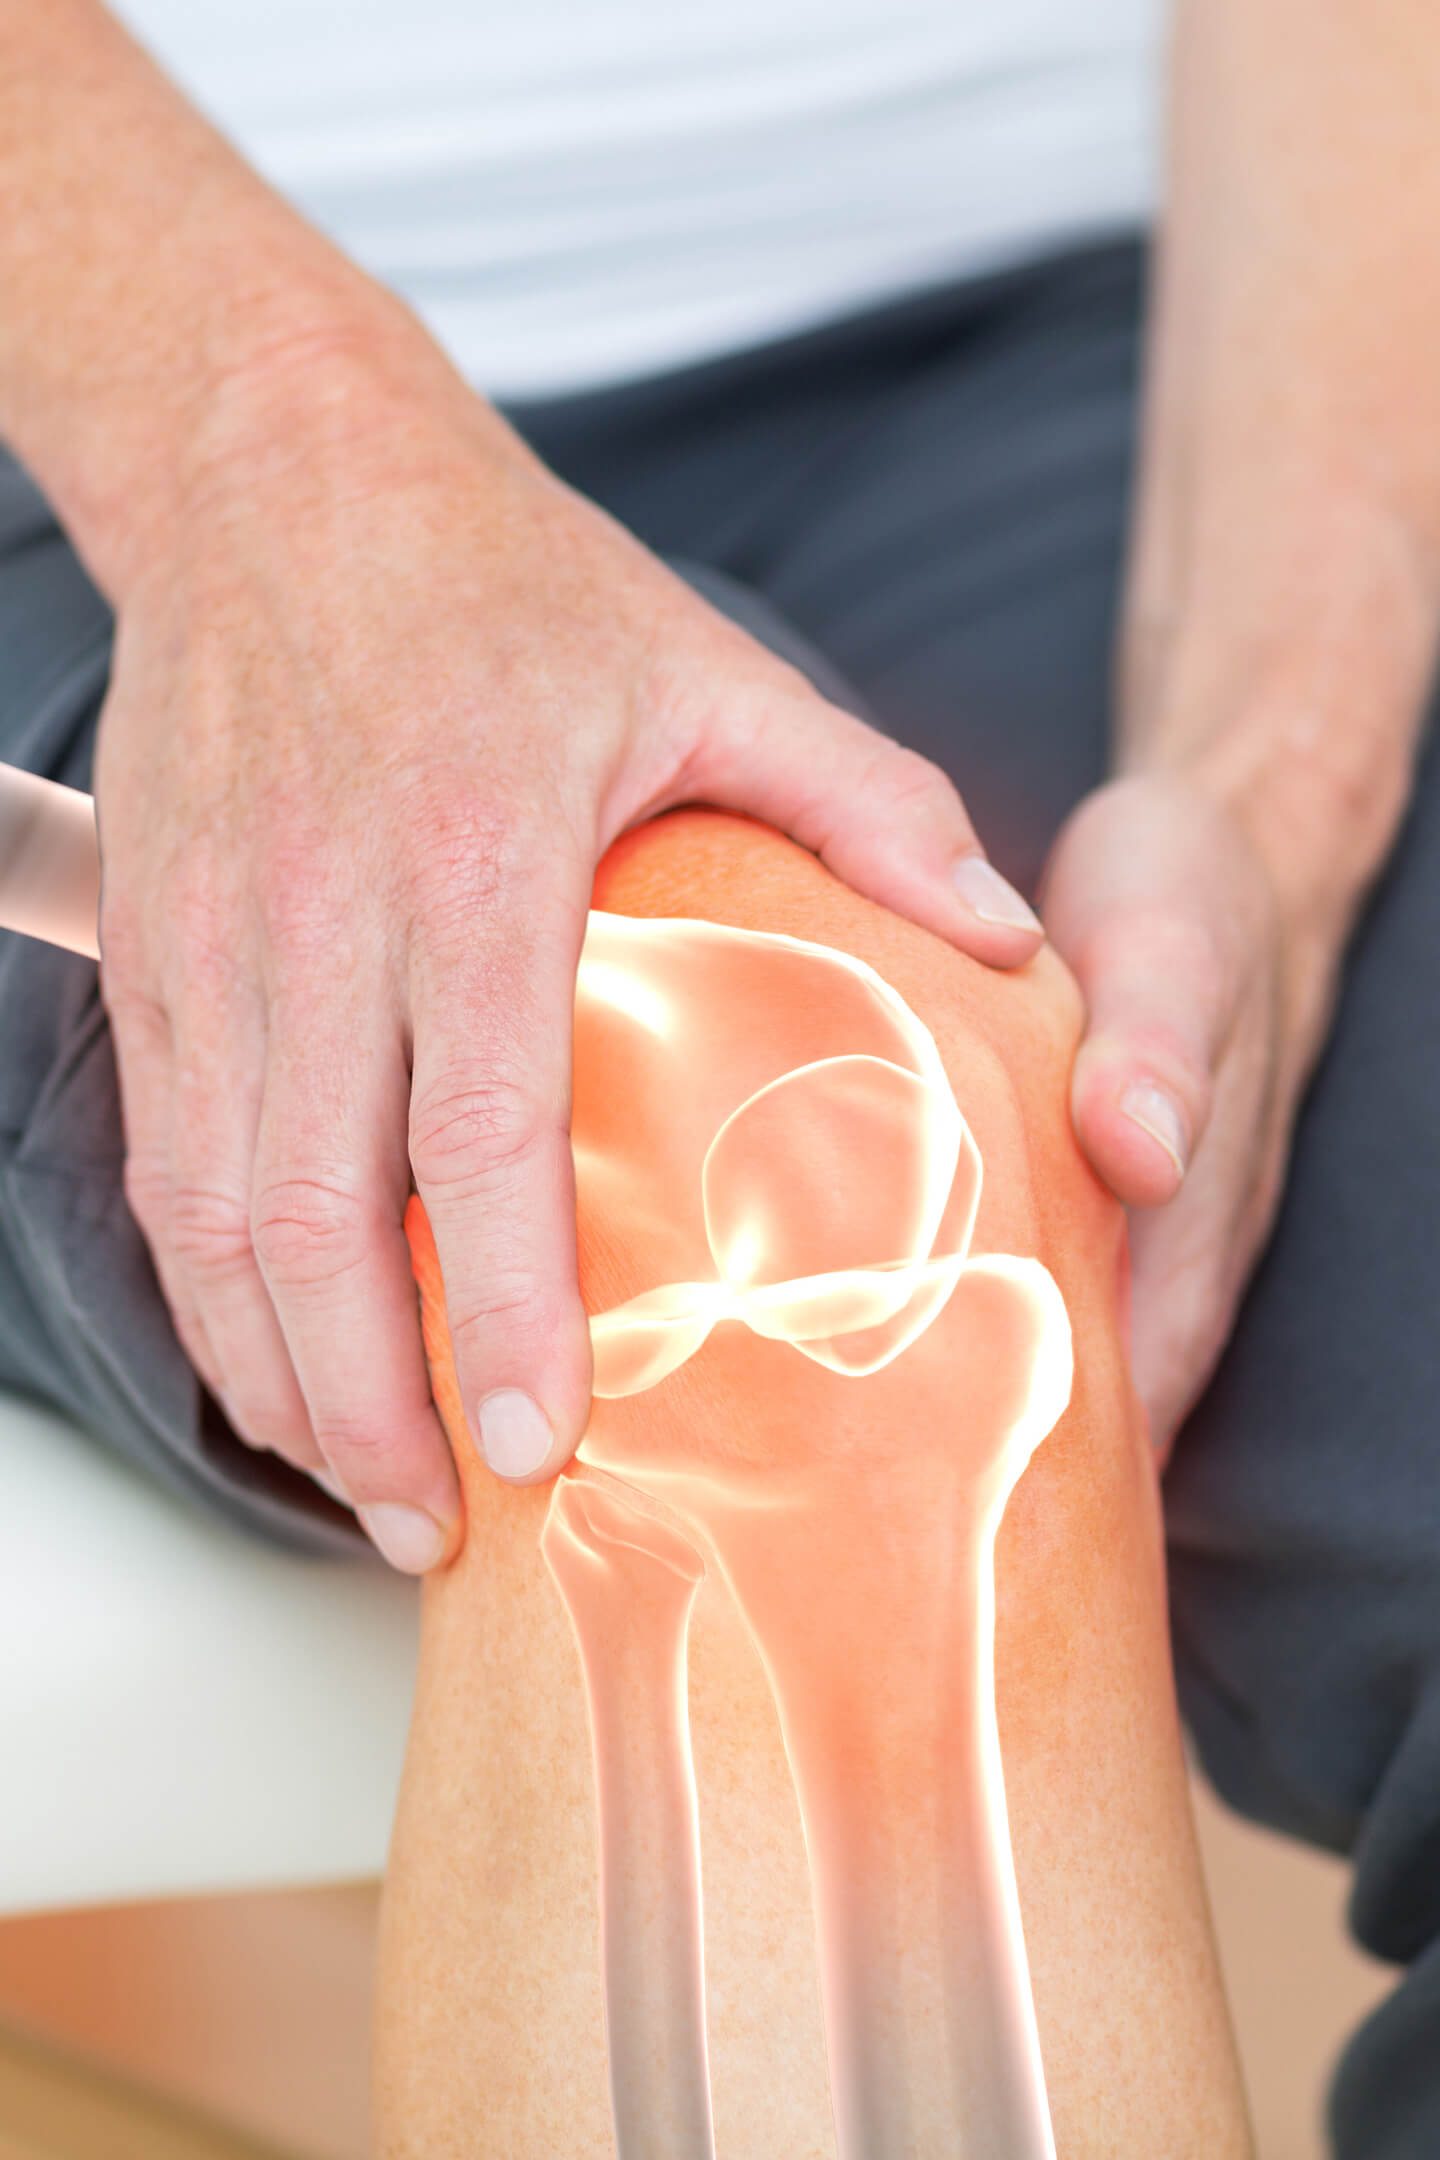 Joint Pain and Arthritis